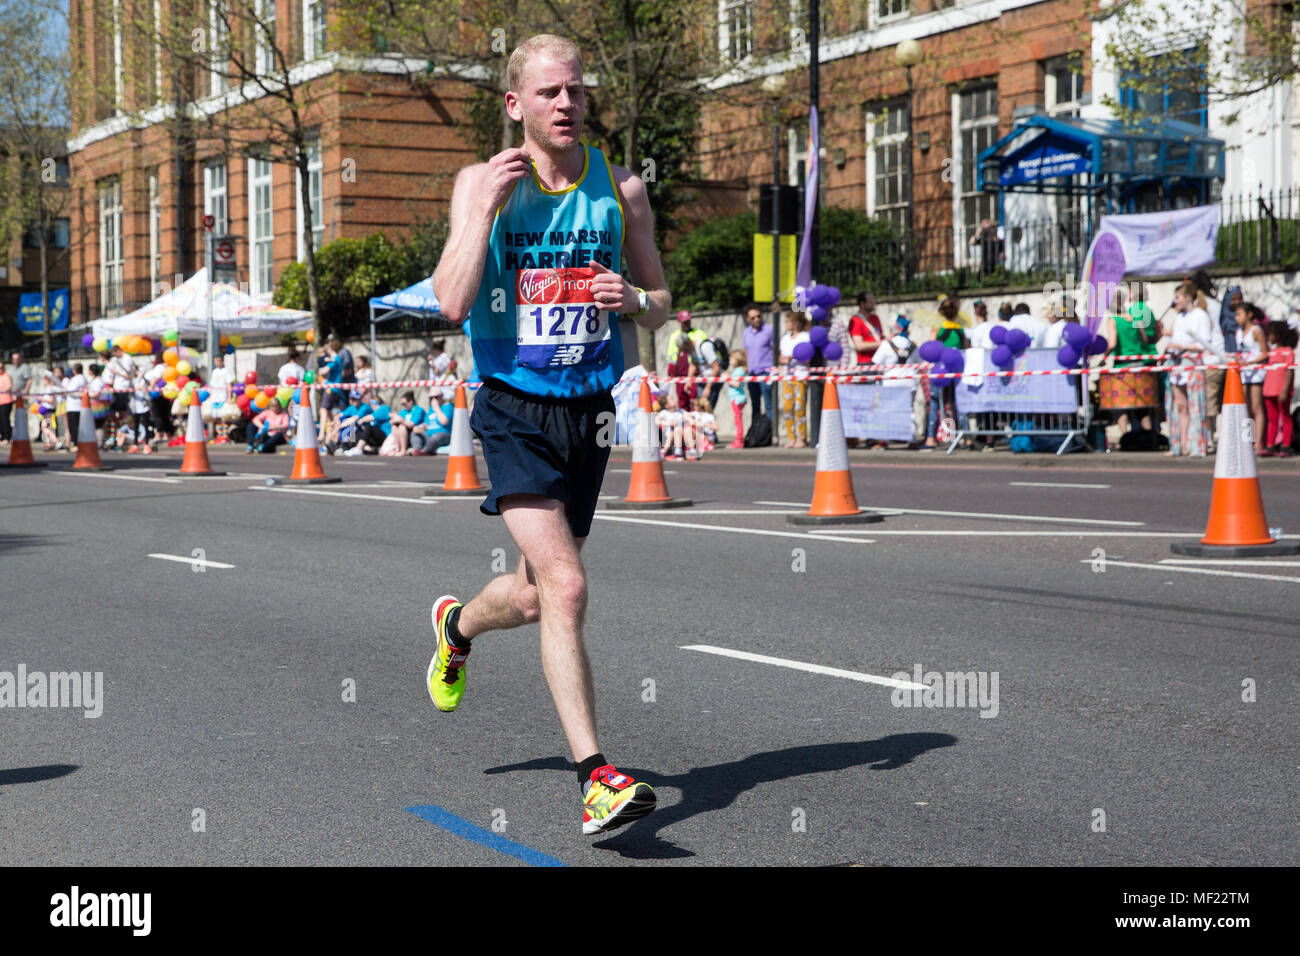 London, UK. 22nd April, 2018. Lewis Gamble-Thompson of New Marske Harriers Club competes in the 2018 Virgin Money London Marathon. The 38th edition of the race was the hottest on record with a temperature of 24.1C recorded in St James's Park. Stock Photo